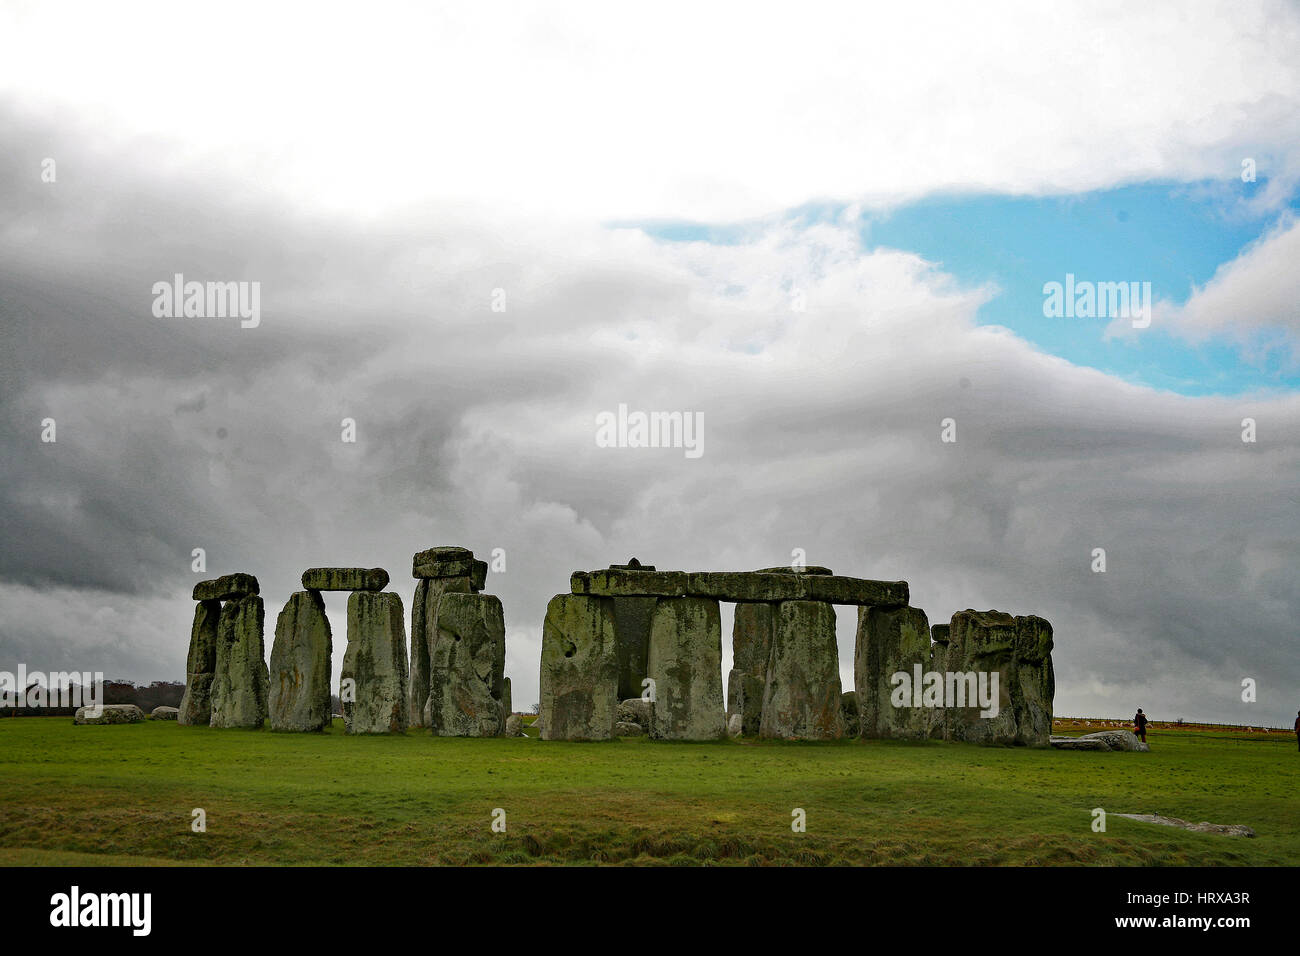 Stonehenge, UK - Stock Image